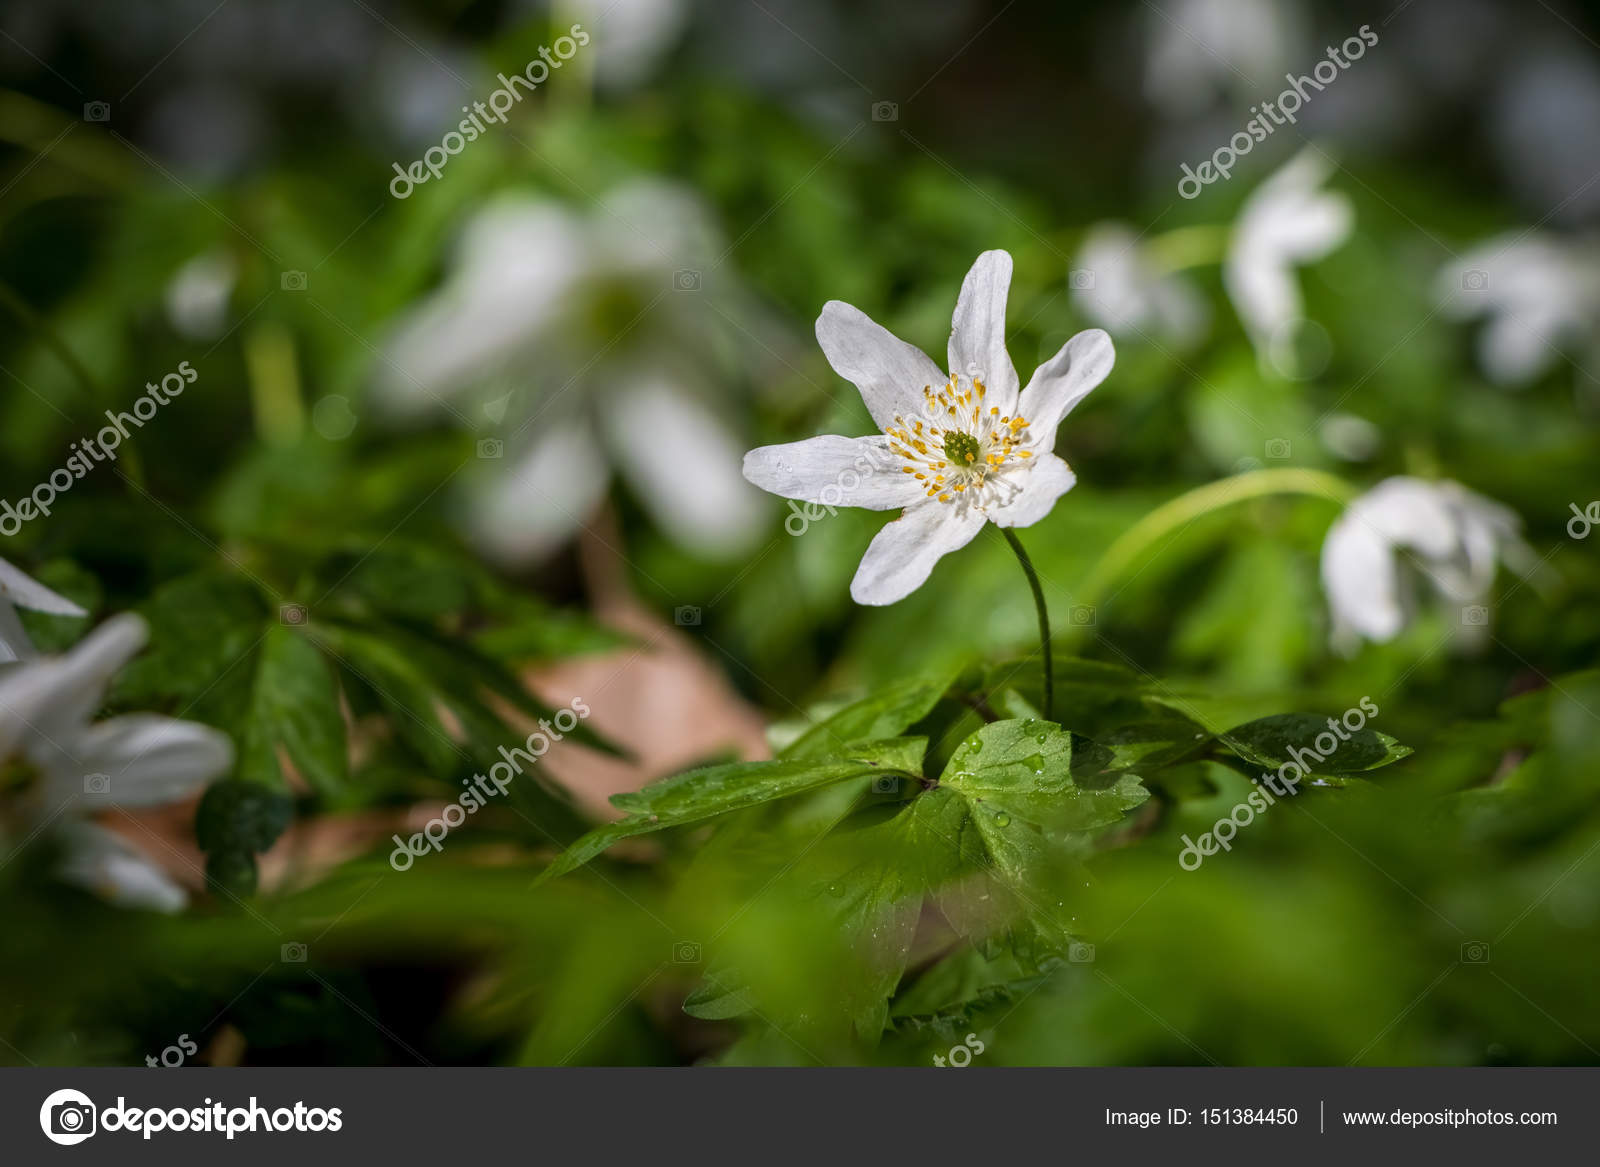 White Flowers Of Wood Anemone In Spring Forest After Rain Stock